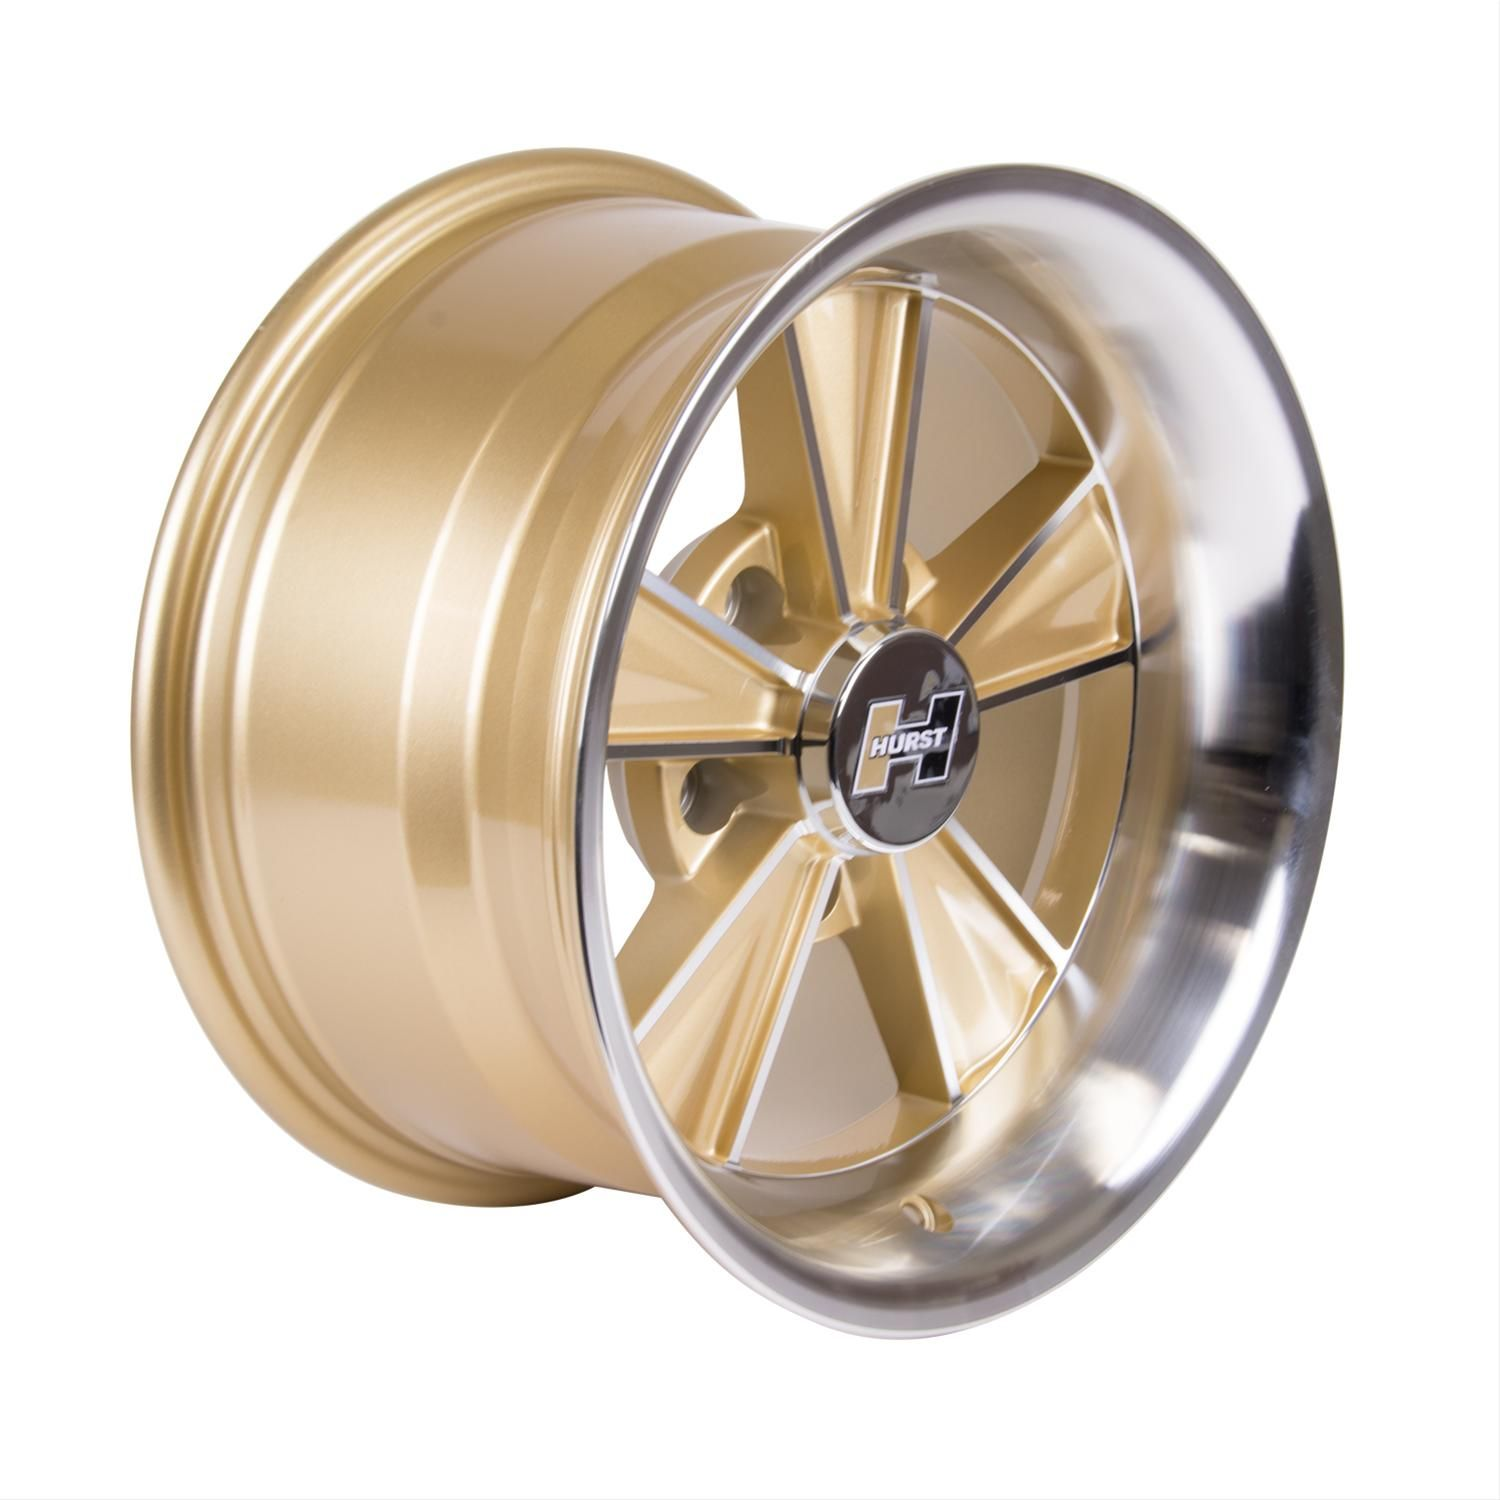 Find Hurst Gold Dazzler Wheels 806043 And Get Free Shipping On Orders Over 99 At Summit Racing A Few Different Companies Used To Sell Ra Wheel Hurst 1965 Gto